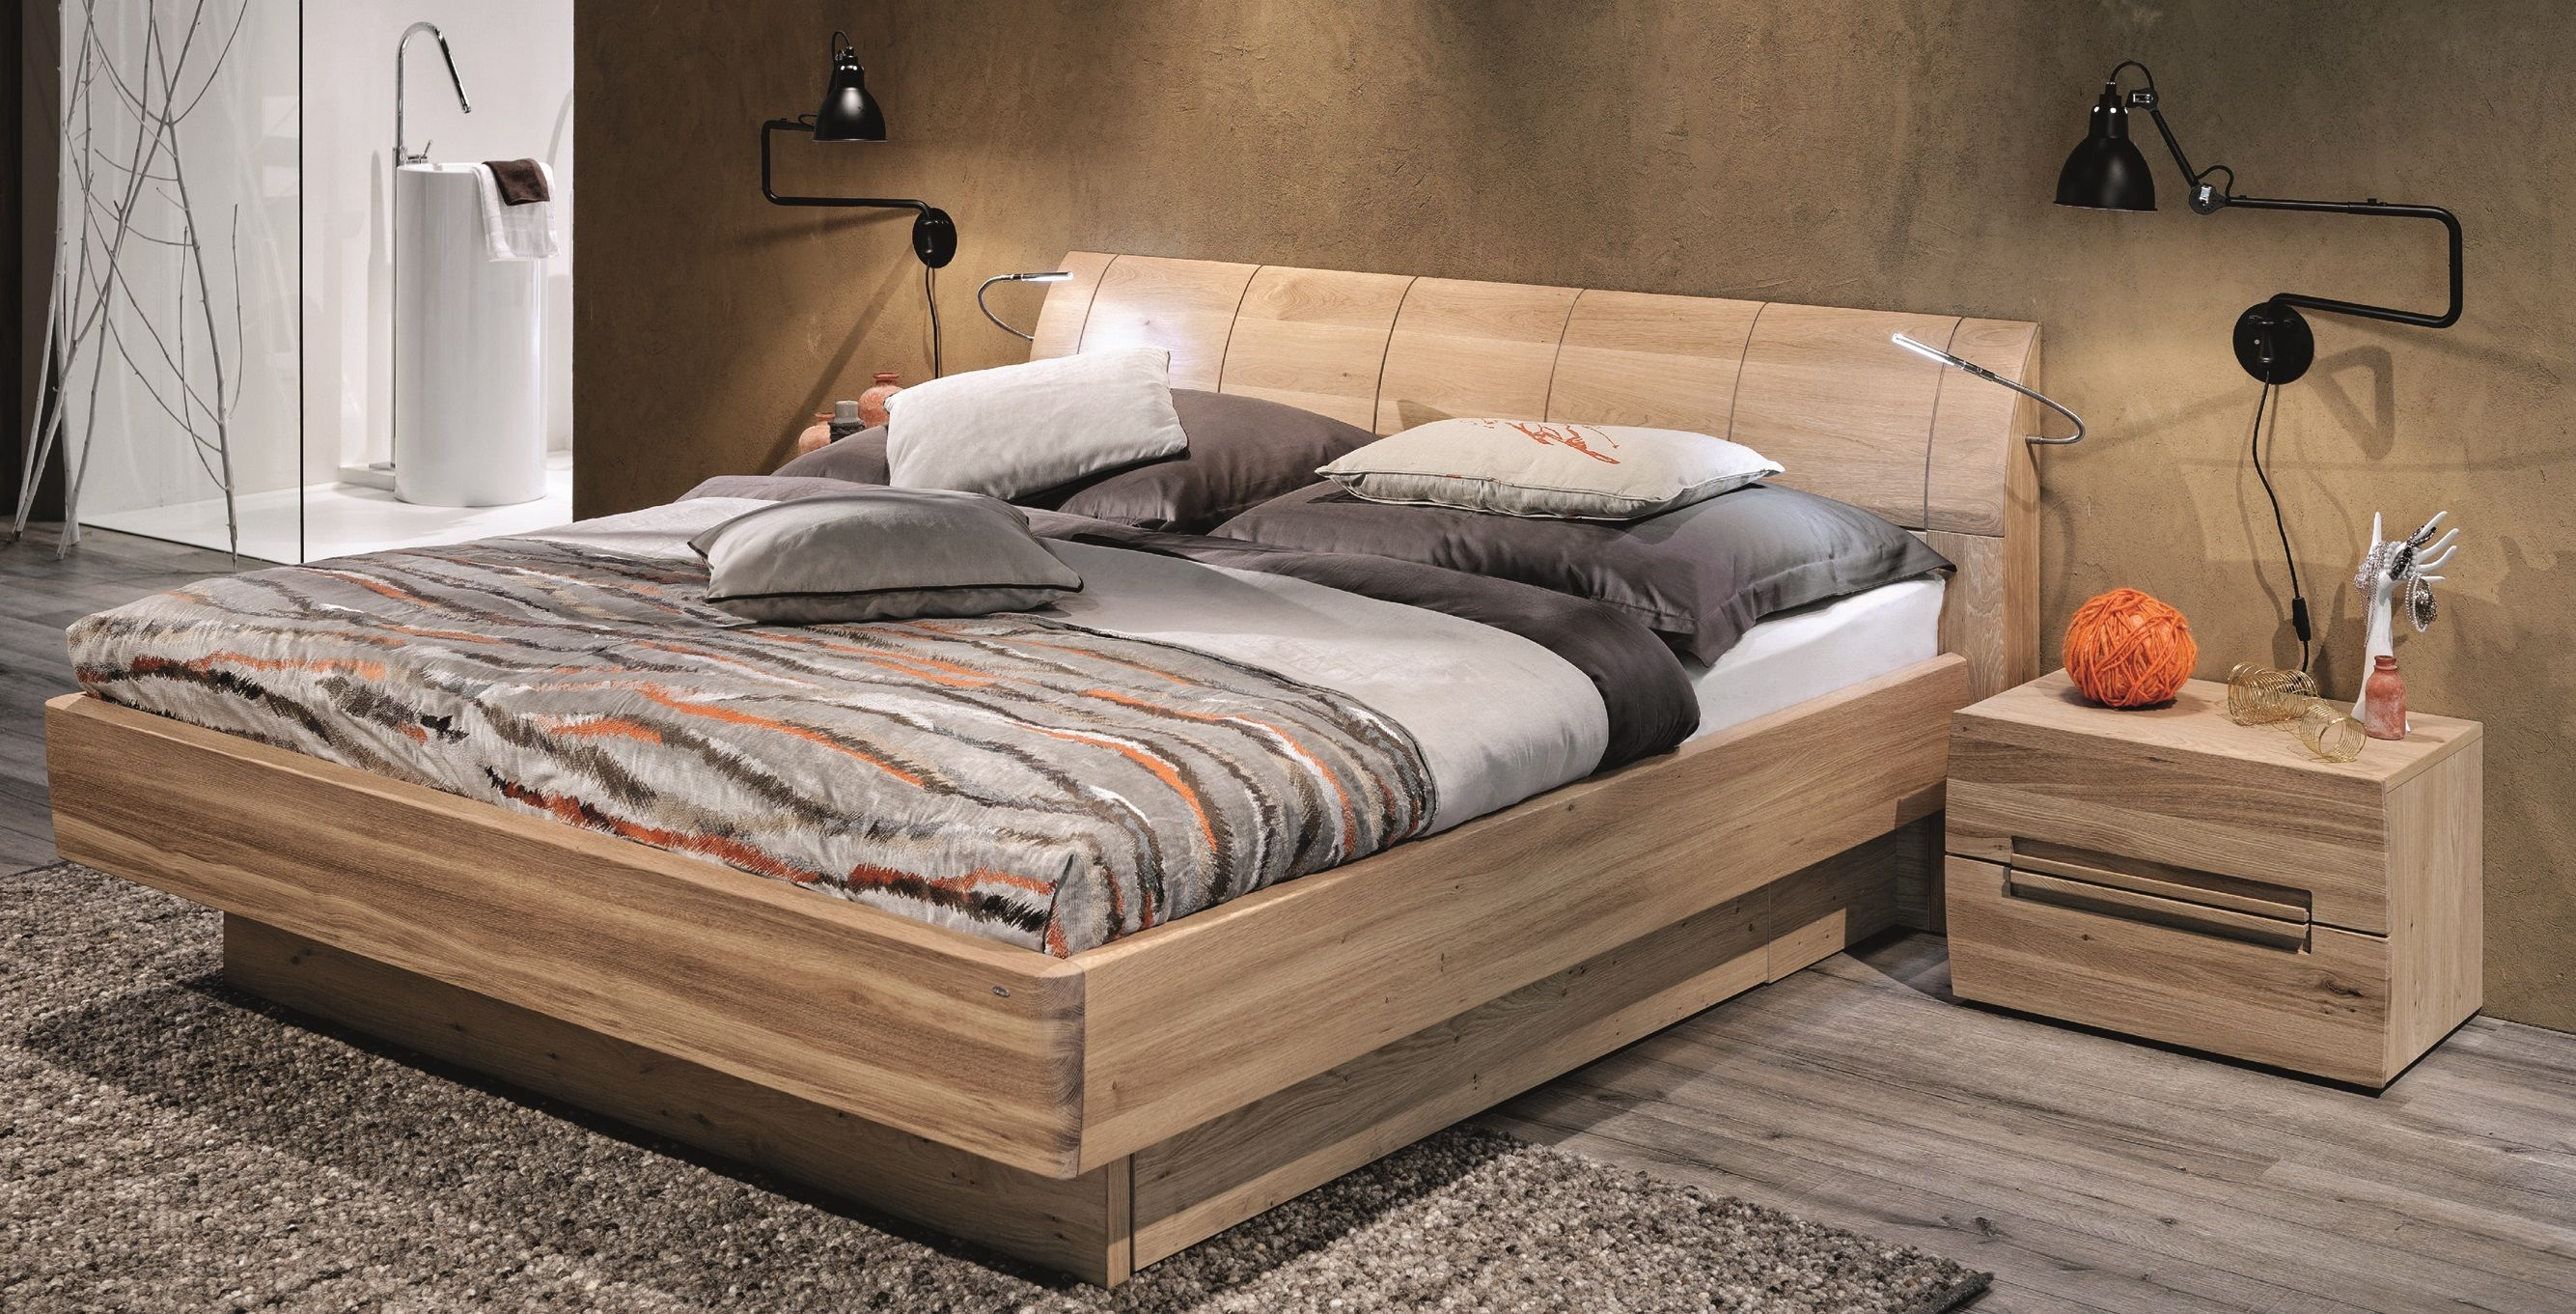 We Are Proud To Present Voglauer S V Natura Line Of Bedroom